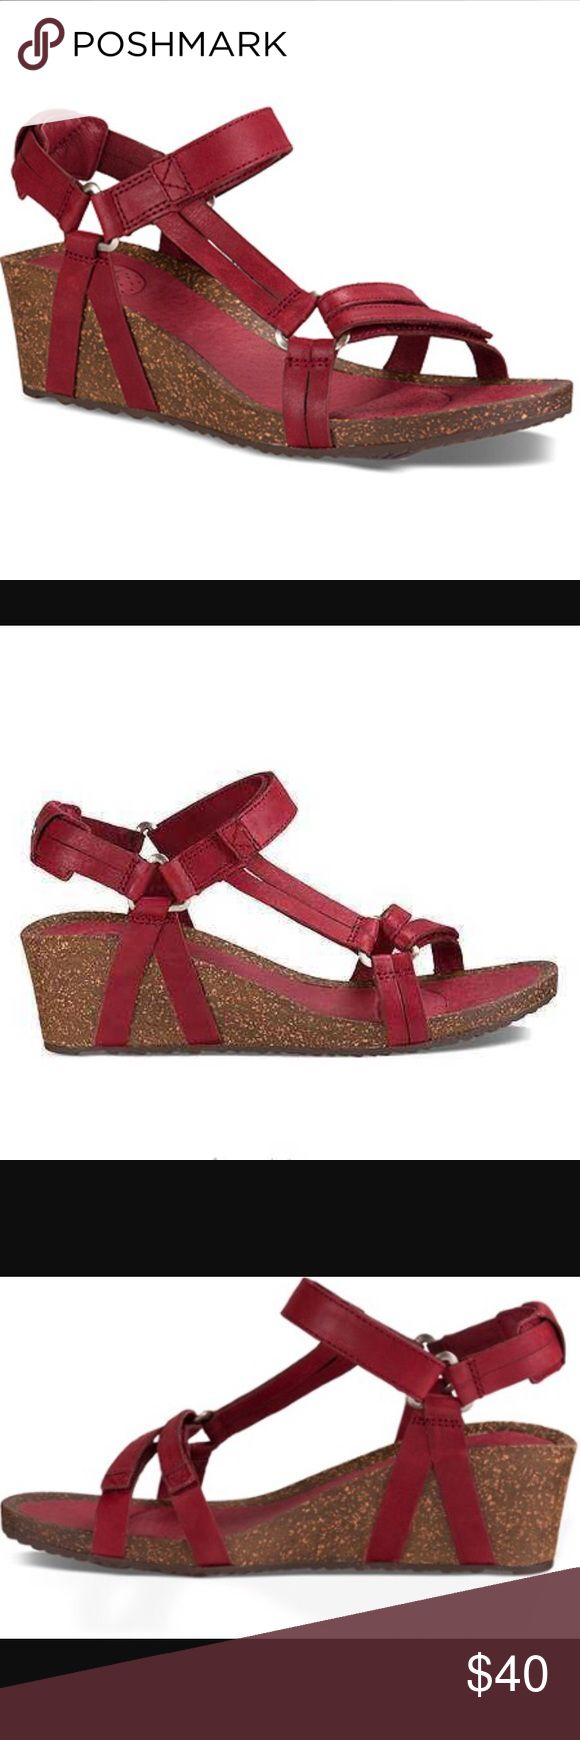 NEW TEVA YSIDRO UNIVERSAL WEDGE.Color:Fired Brick Model: 1015119 A sleek, feminine take on the iconic Universal, this light, comfortable wedge sandal features fully adjustable leather straps for the absolute perfect fit. Teva Shoes Wedges